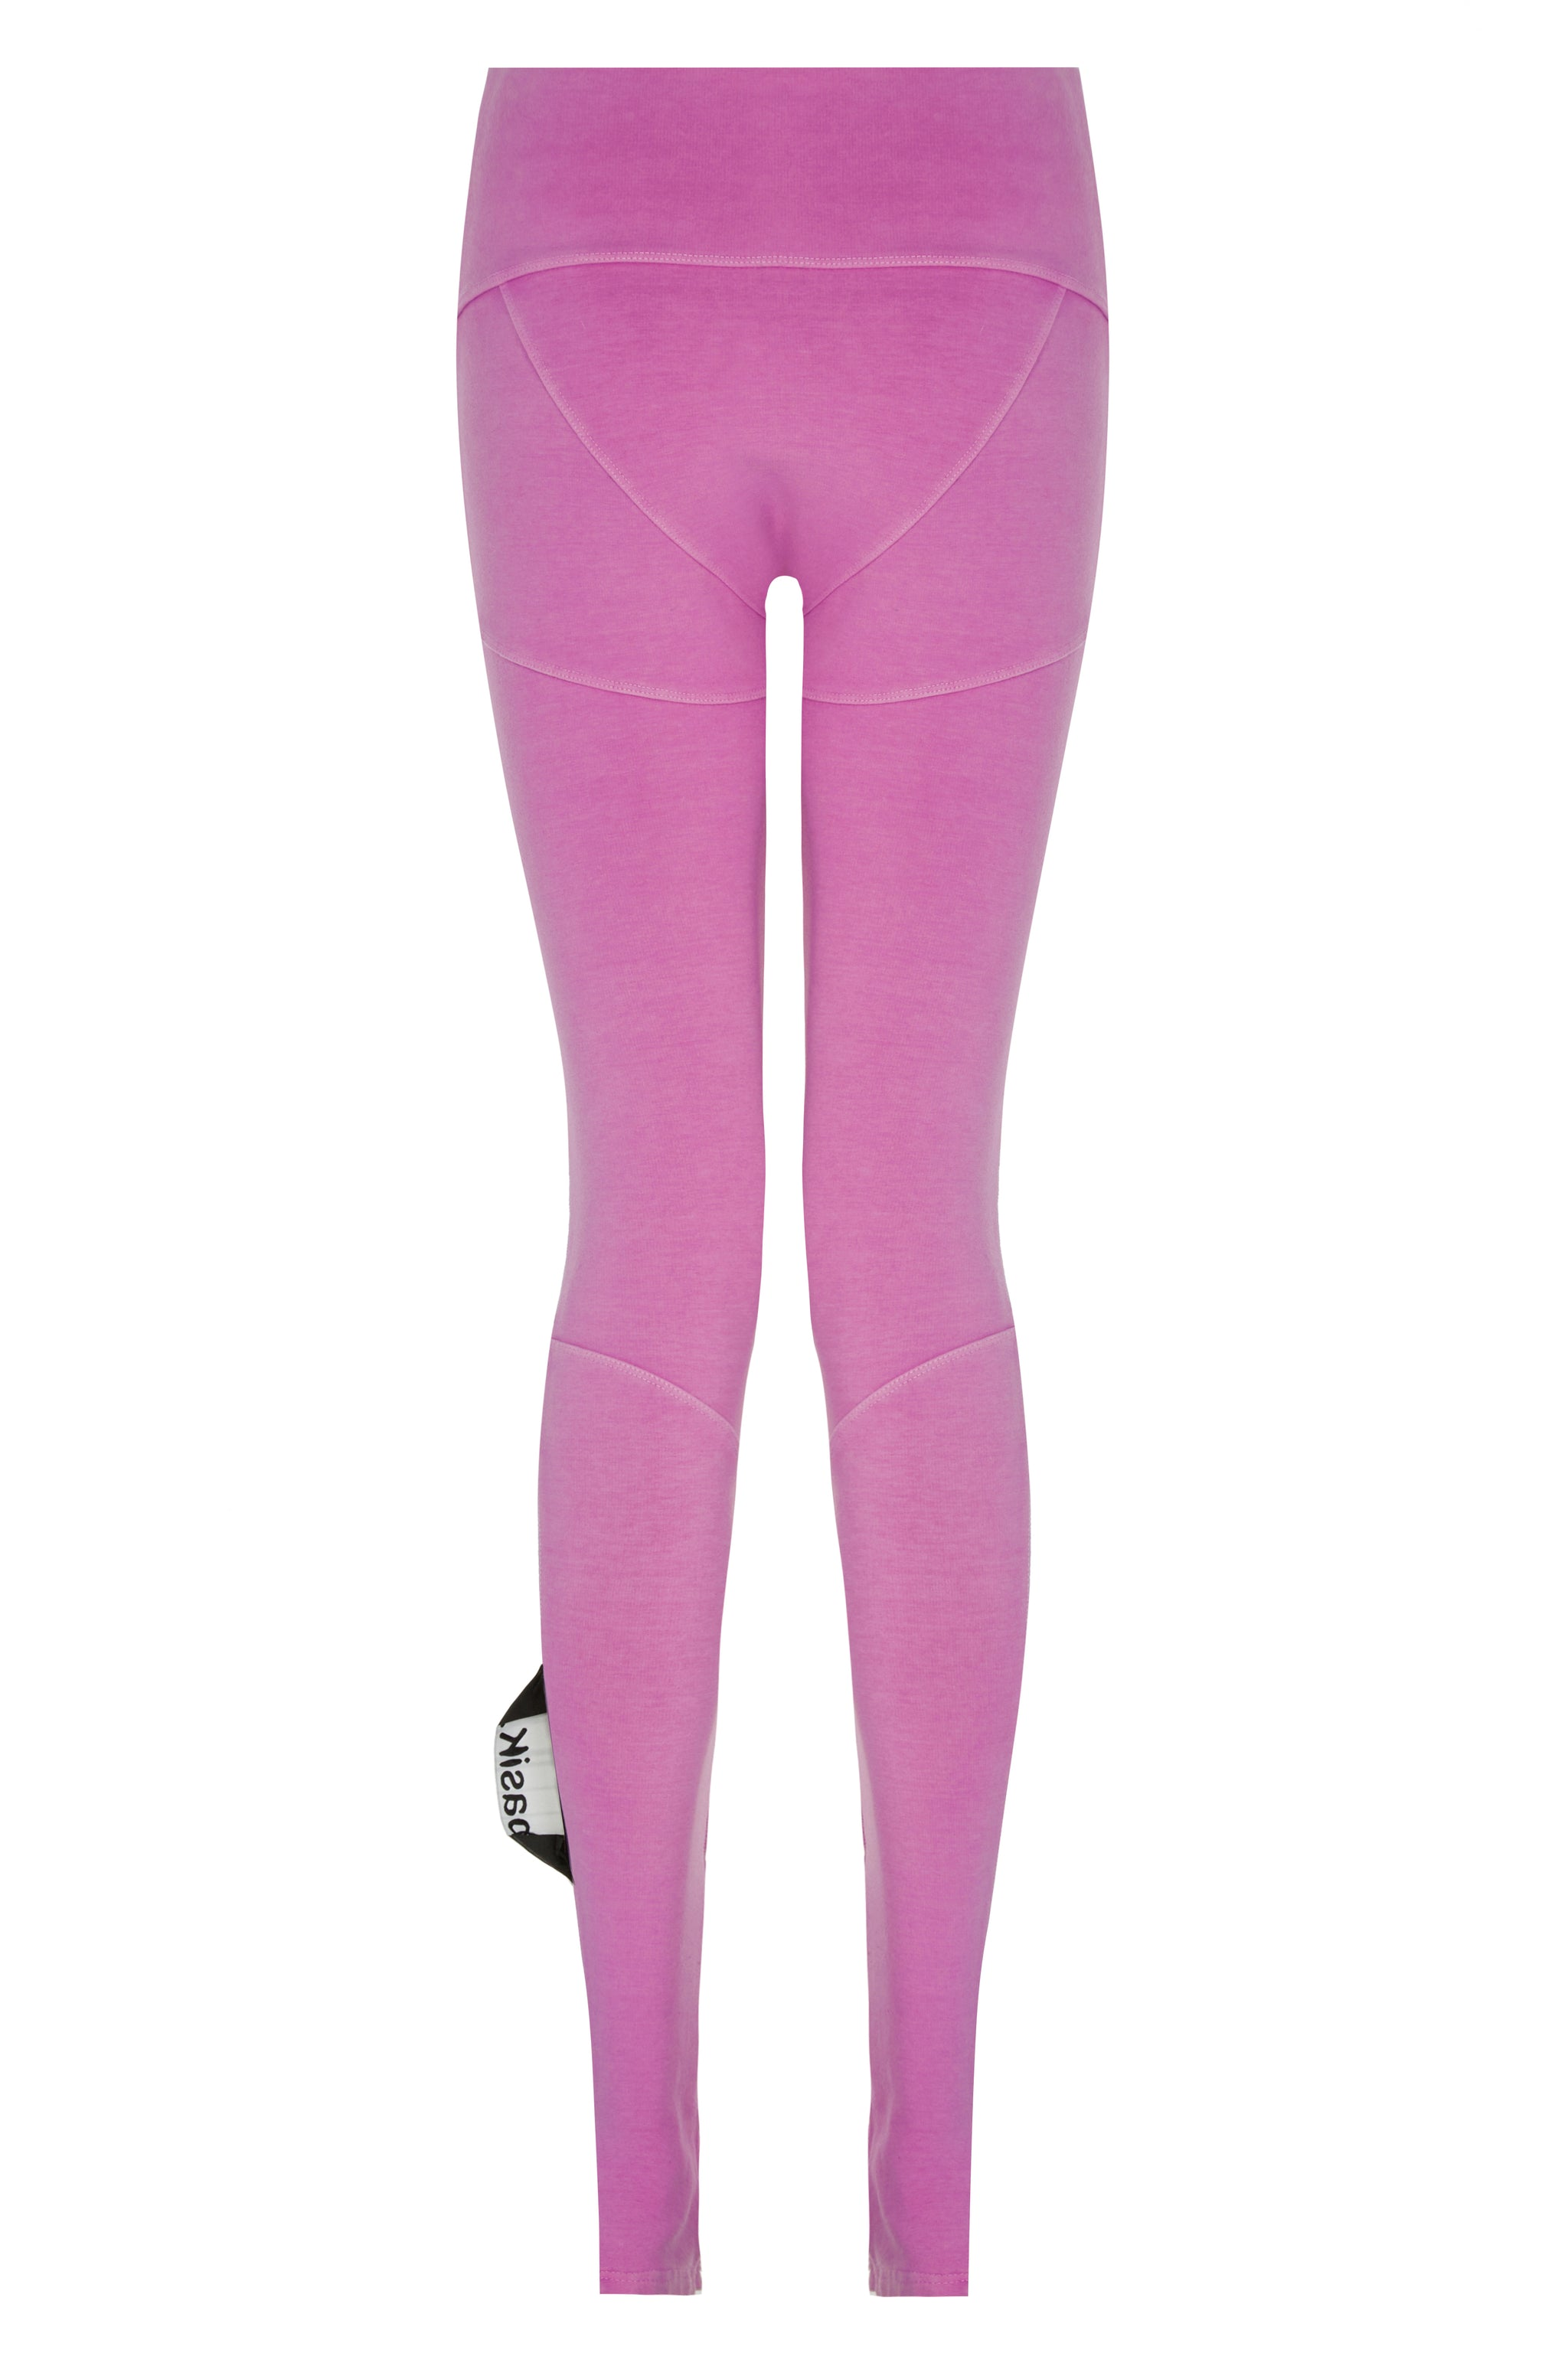 basiK• Multi-Panelled Leggings in Pansy Pink